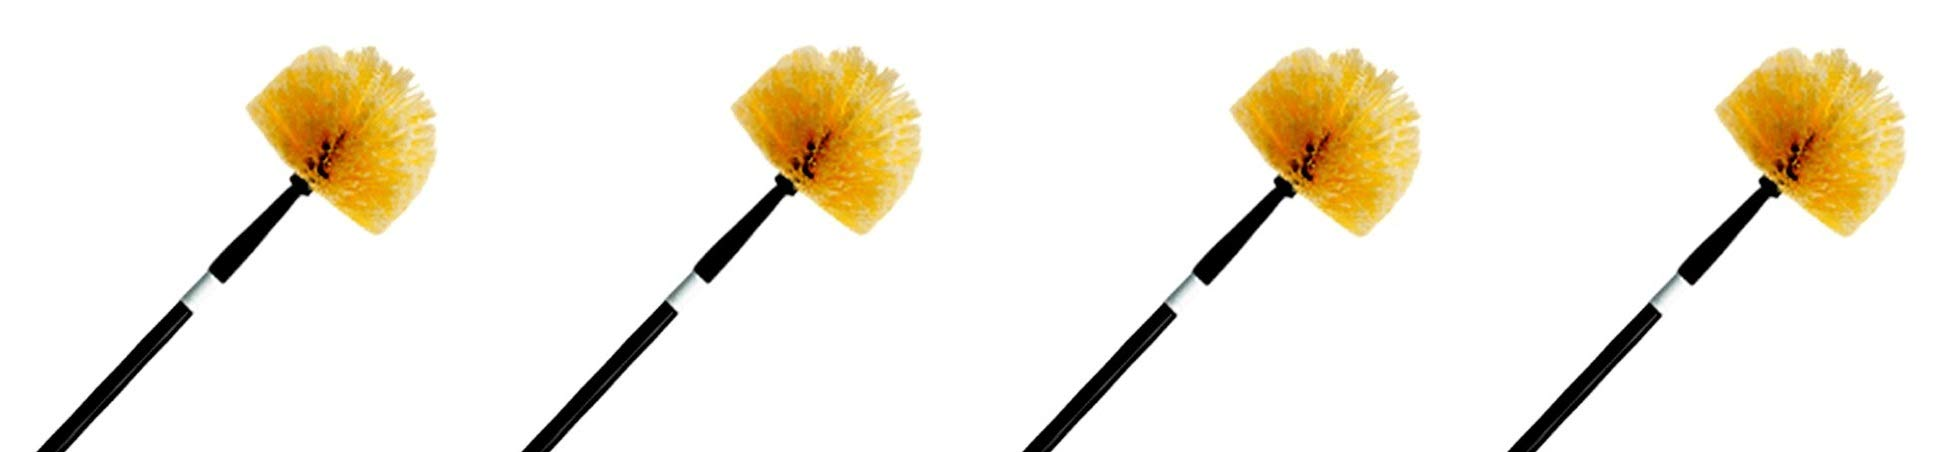 Ettore 31028 Professional Cobweb Duster with Pole (4-(Pack))